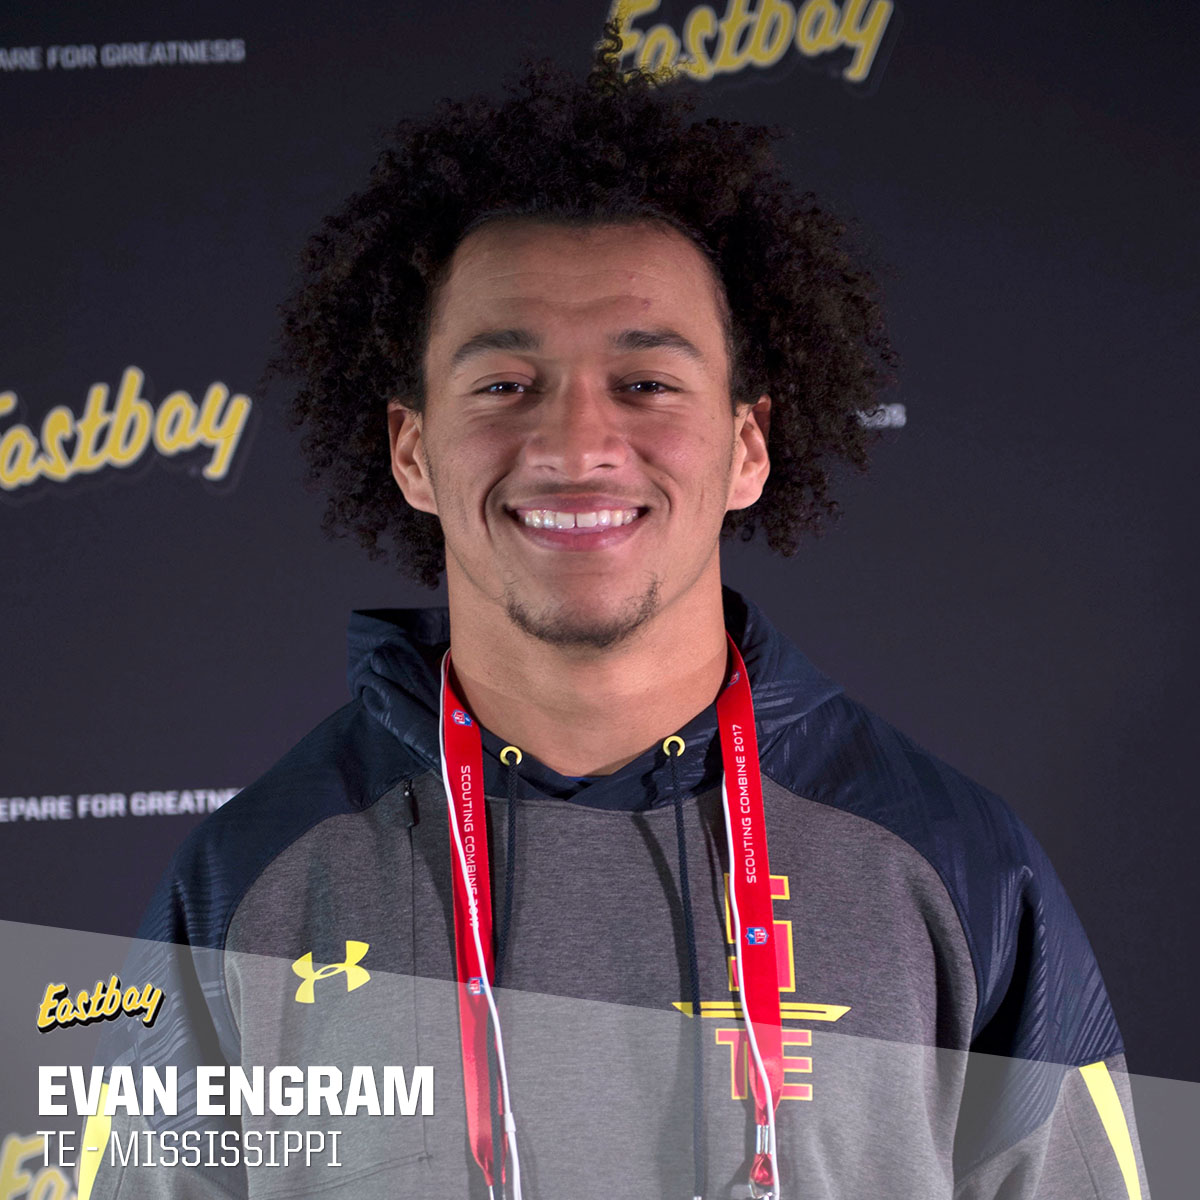 Live From Indy: Meet The Athletes